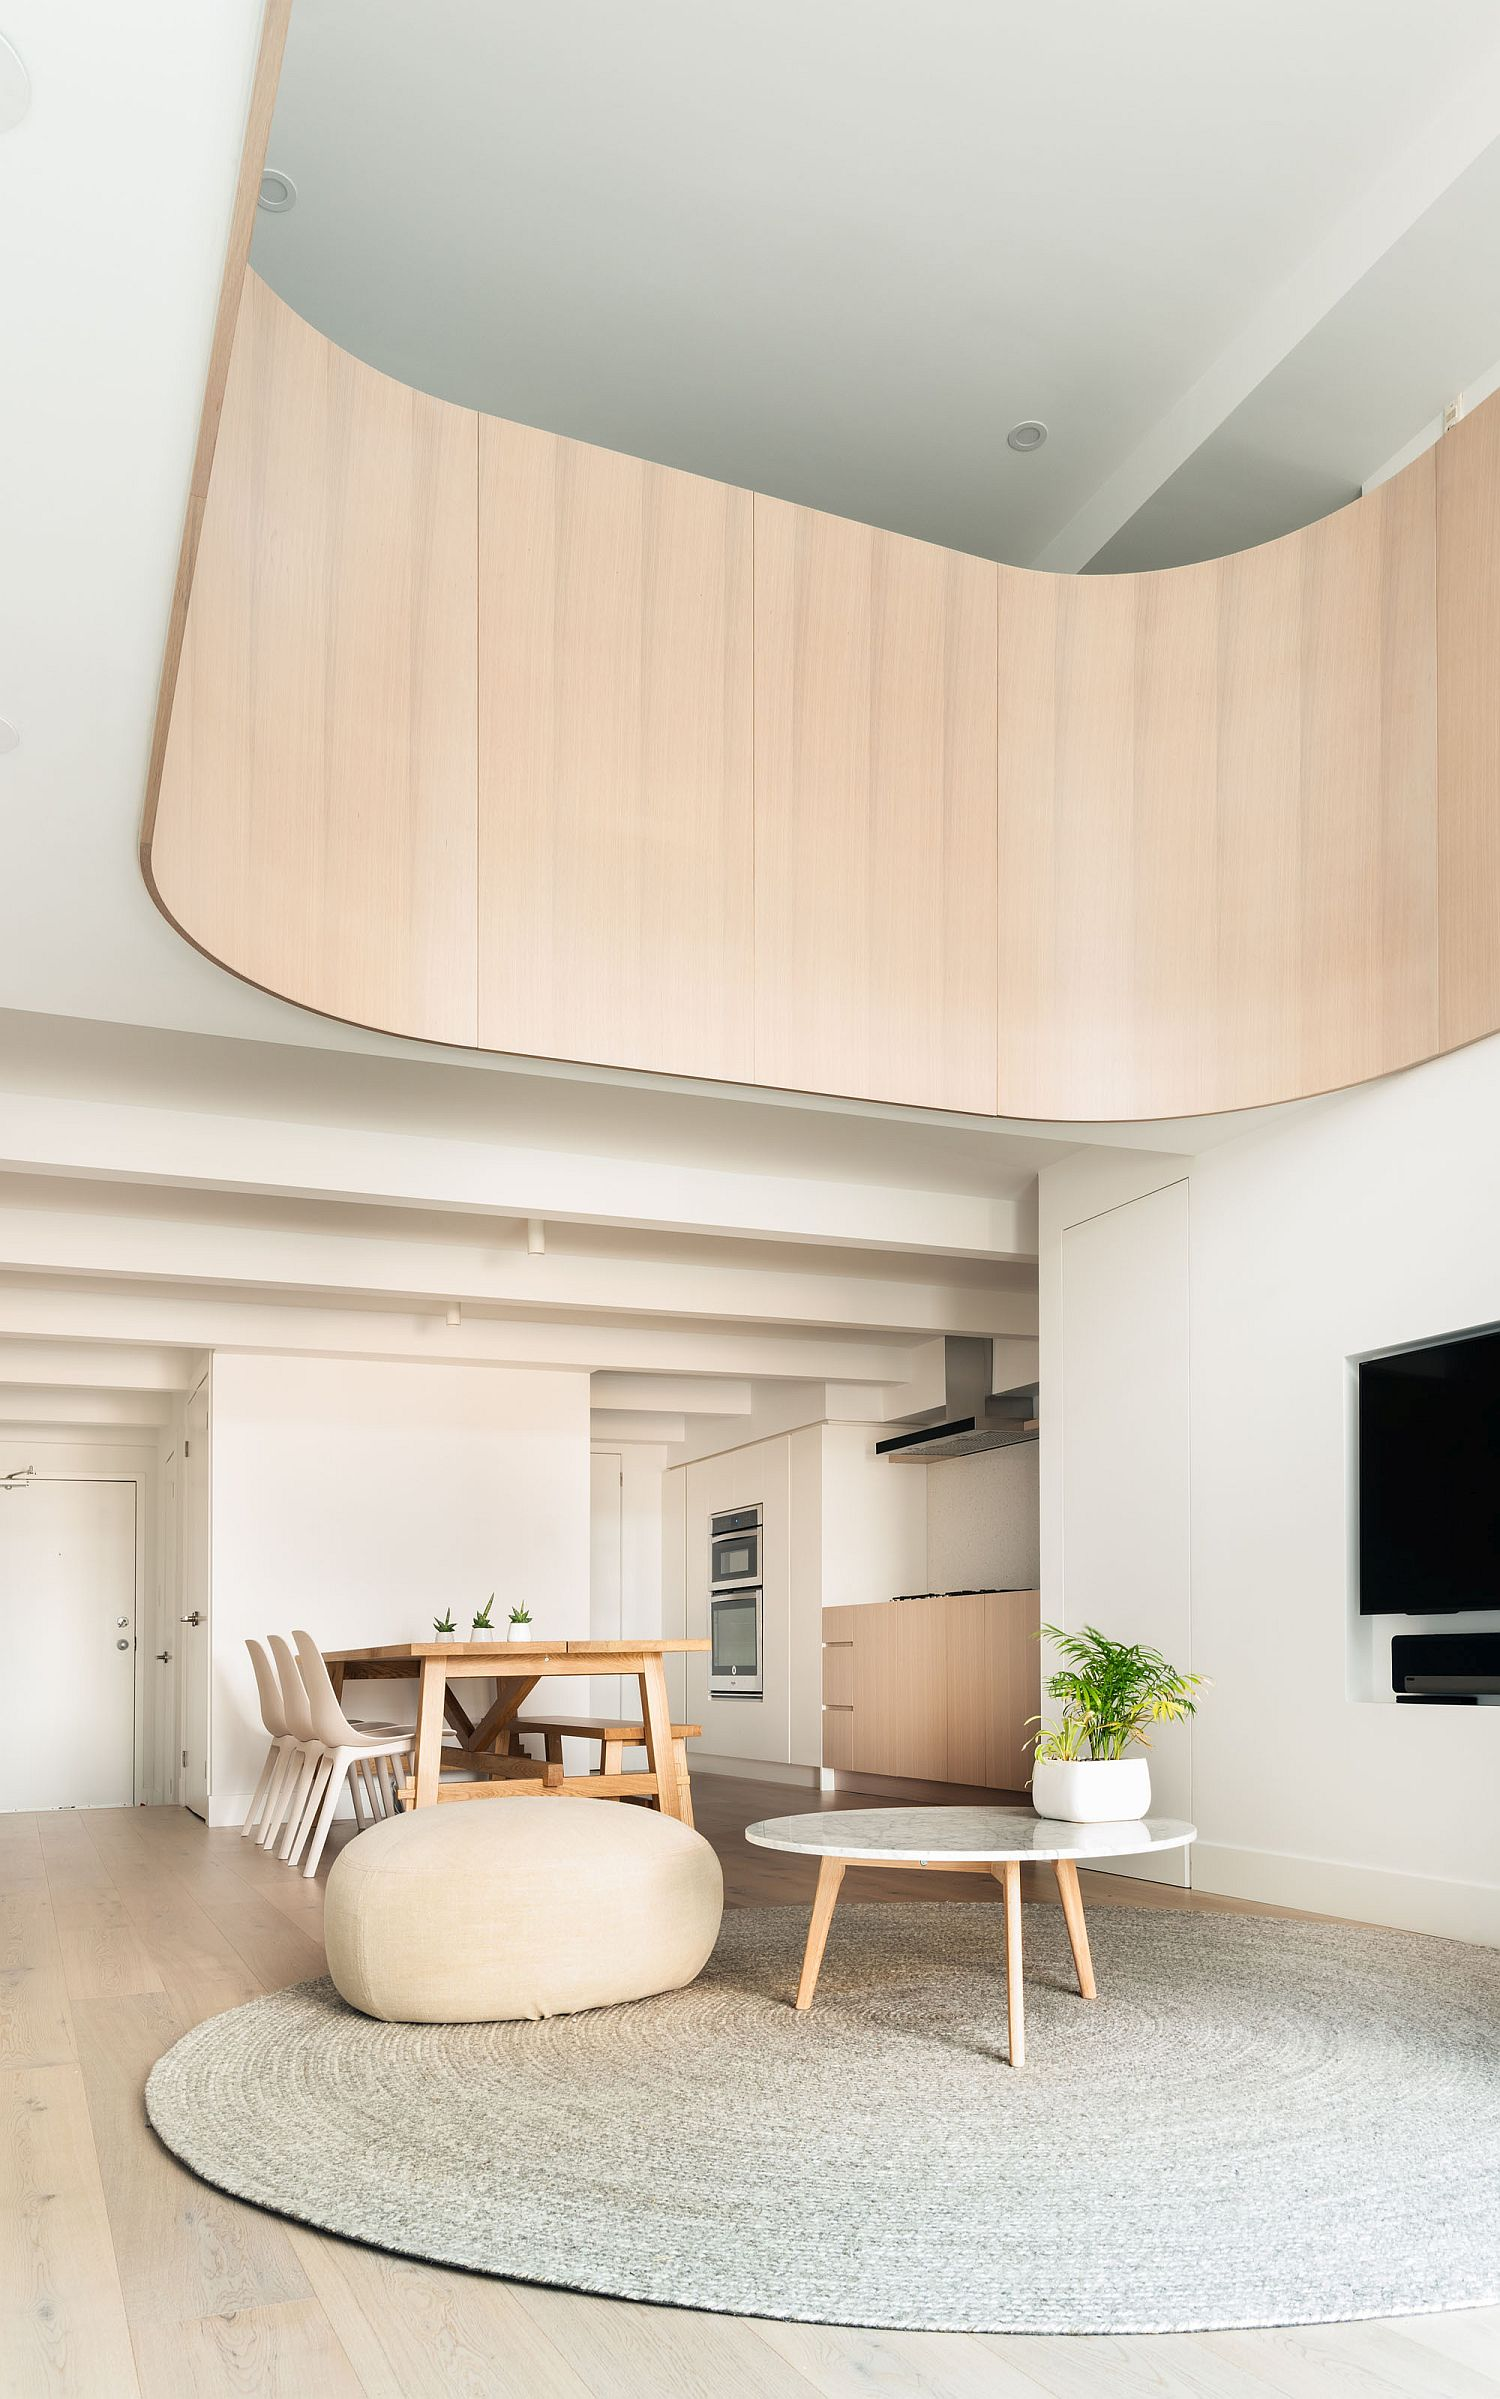 Curved wooden element lends softness to the minimal modern interior